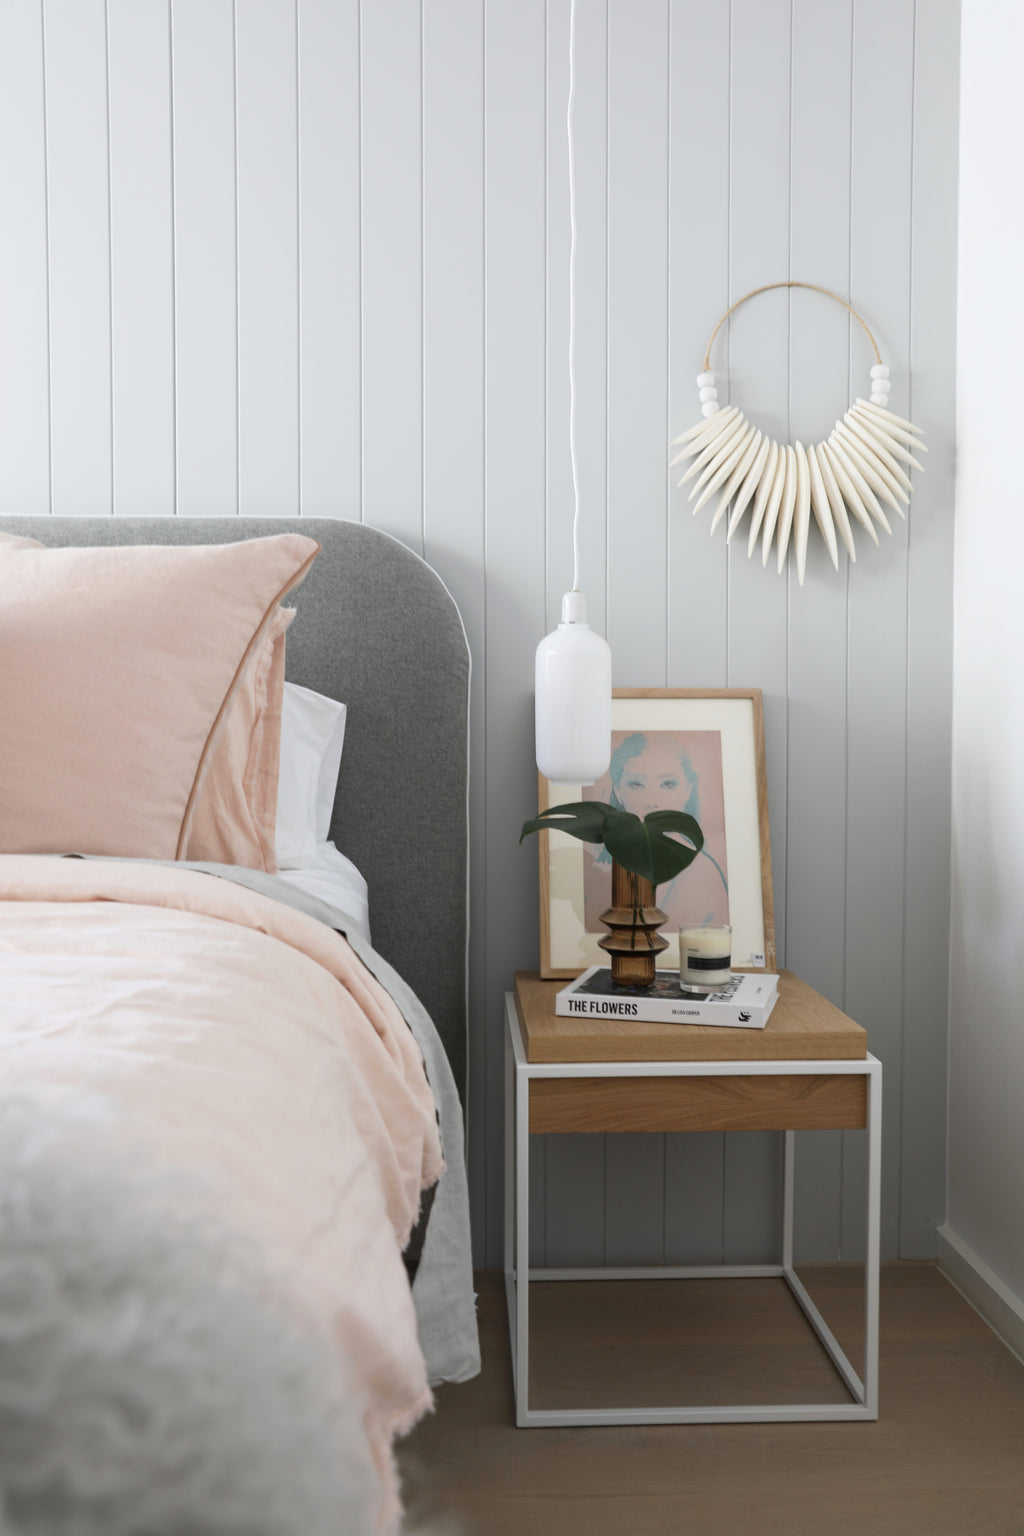 norsu interiors x The Cullin Design Curved bedhead, Felt with White Leather Piping